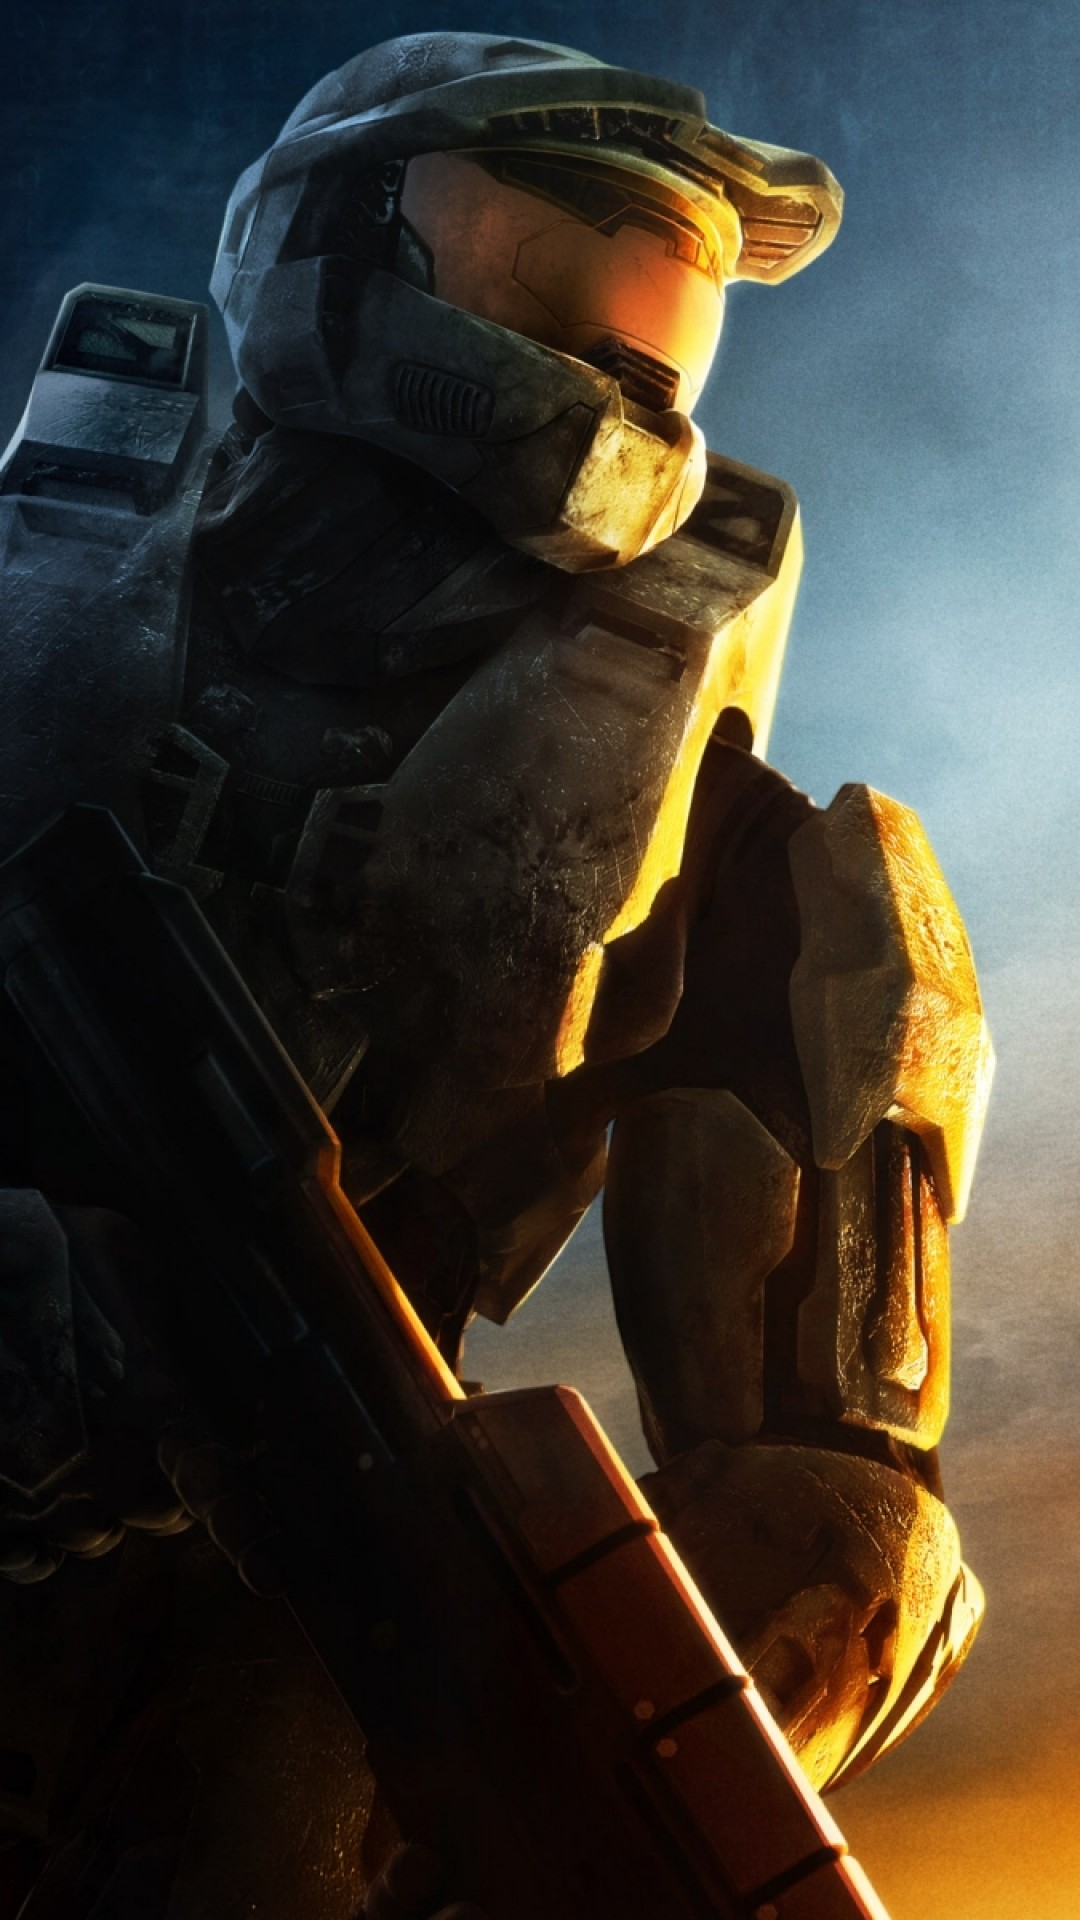 1080x1920 Preview Wallpaper Halo Soldier Sunset Gun